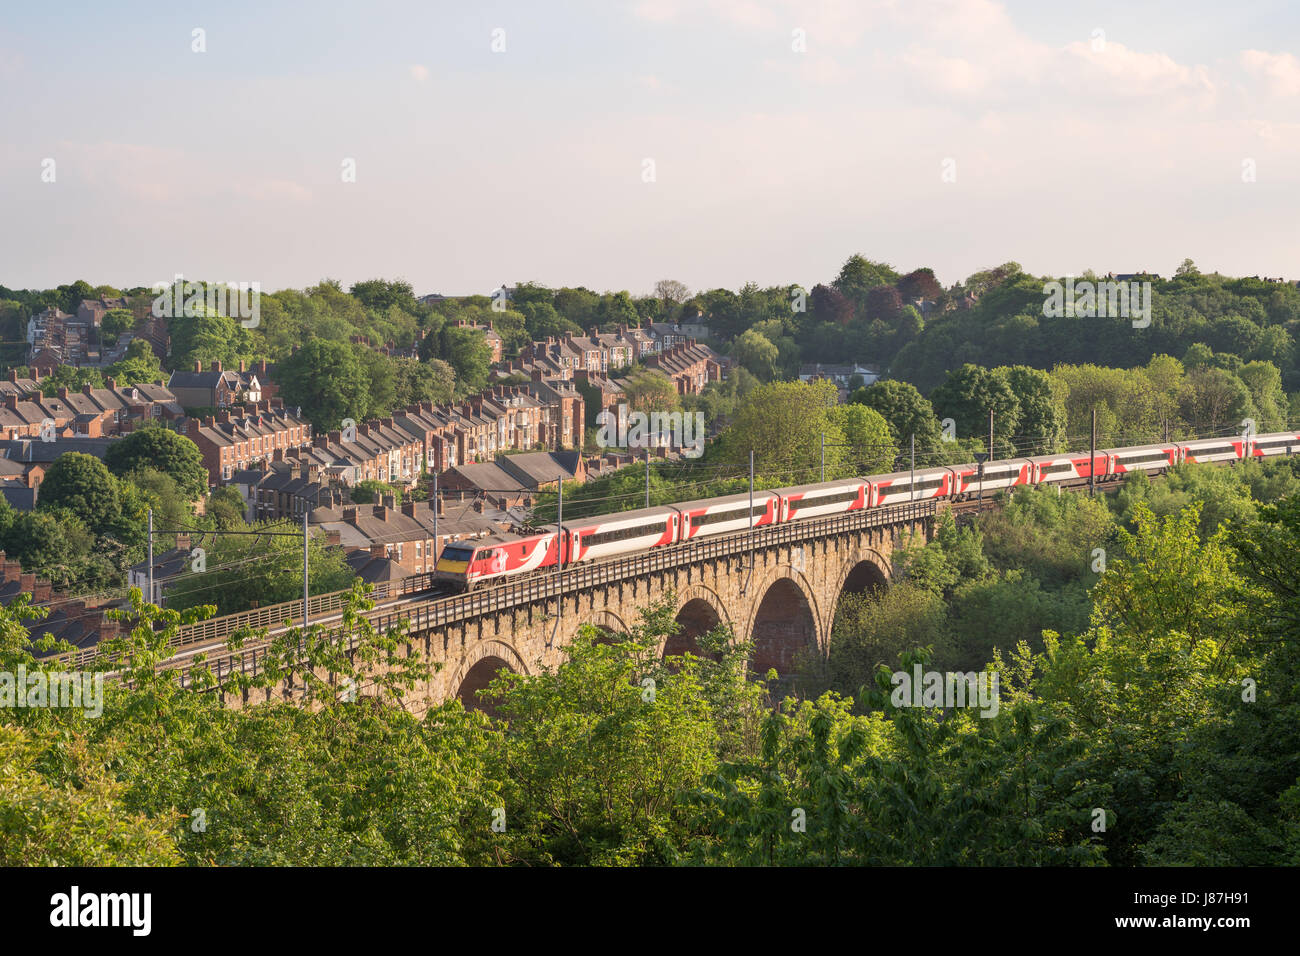 Virgin Intercity 225 express train crosses Durham rail viaduct, England, UK - Stock Image